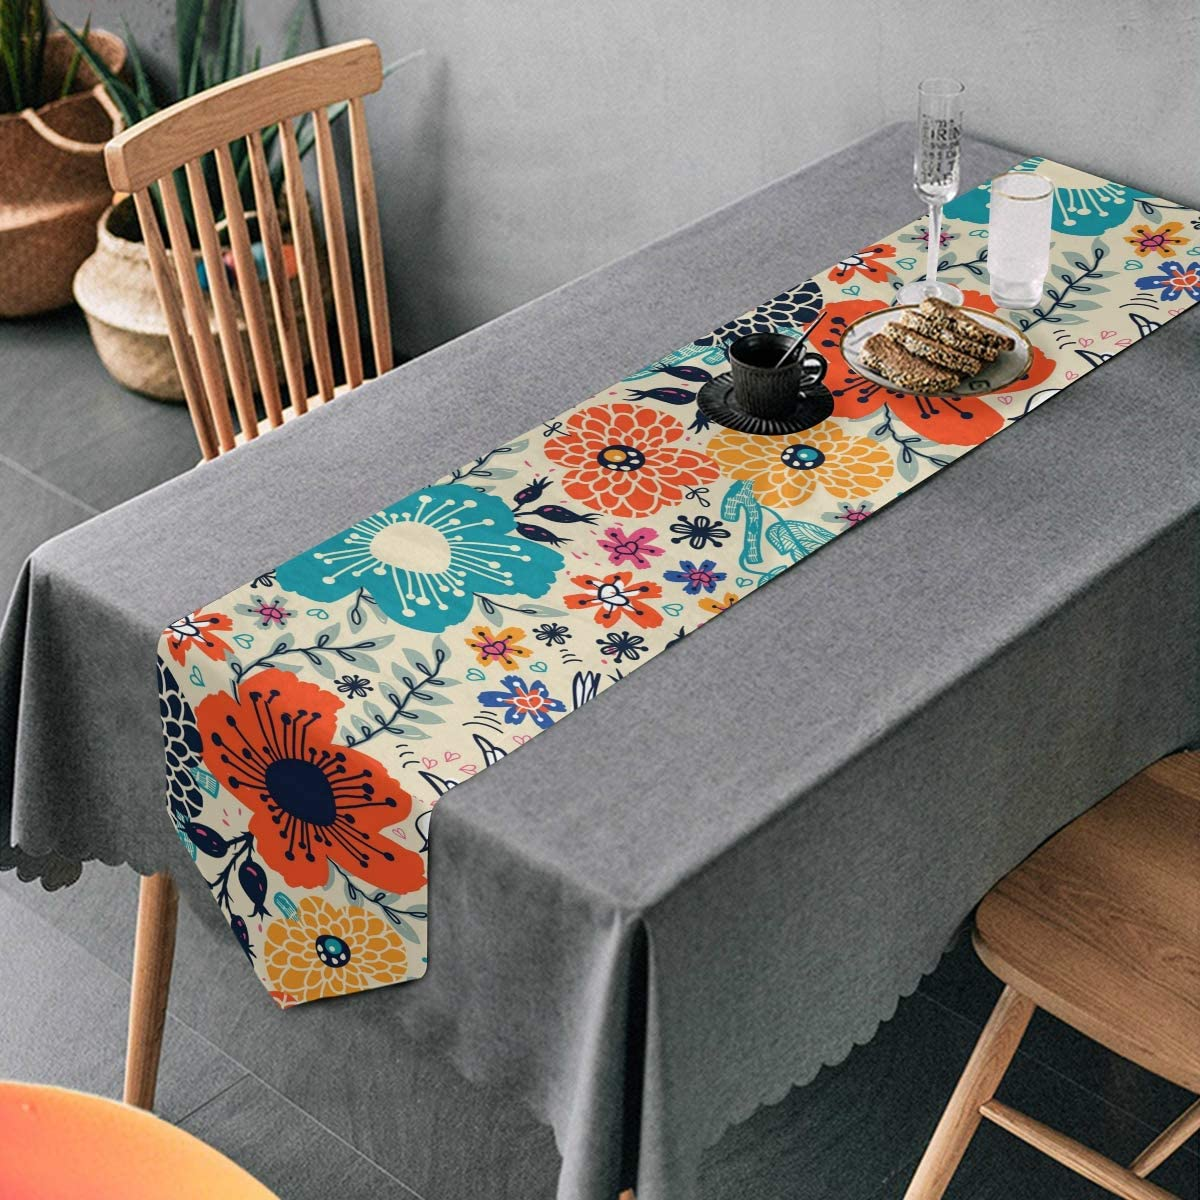 Aflyko Spring Flowers Table Runner Dining Table Decor 13